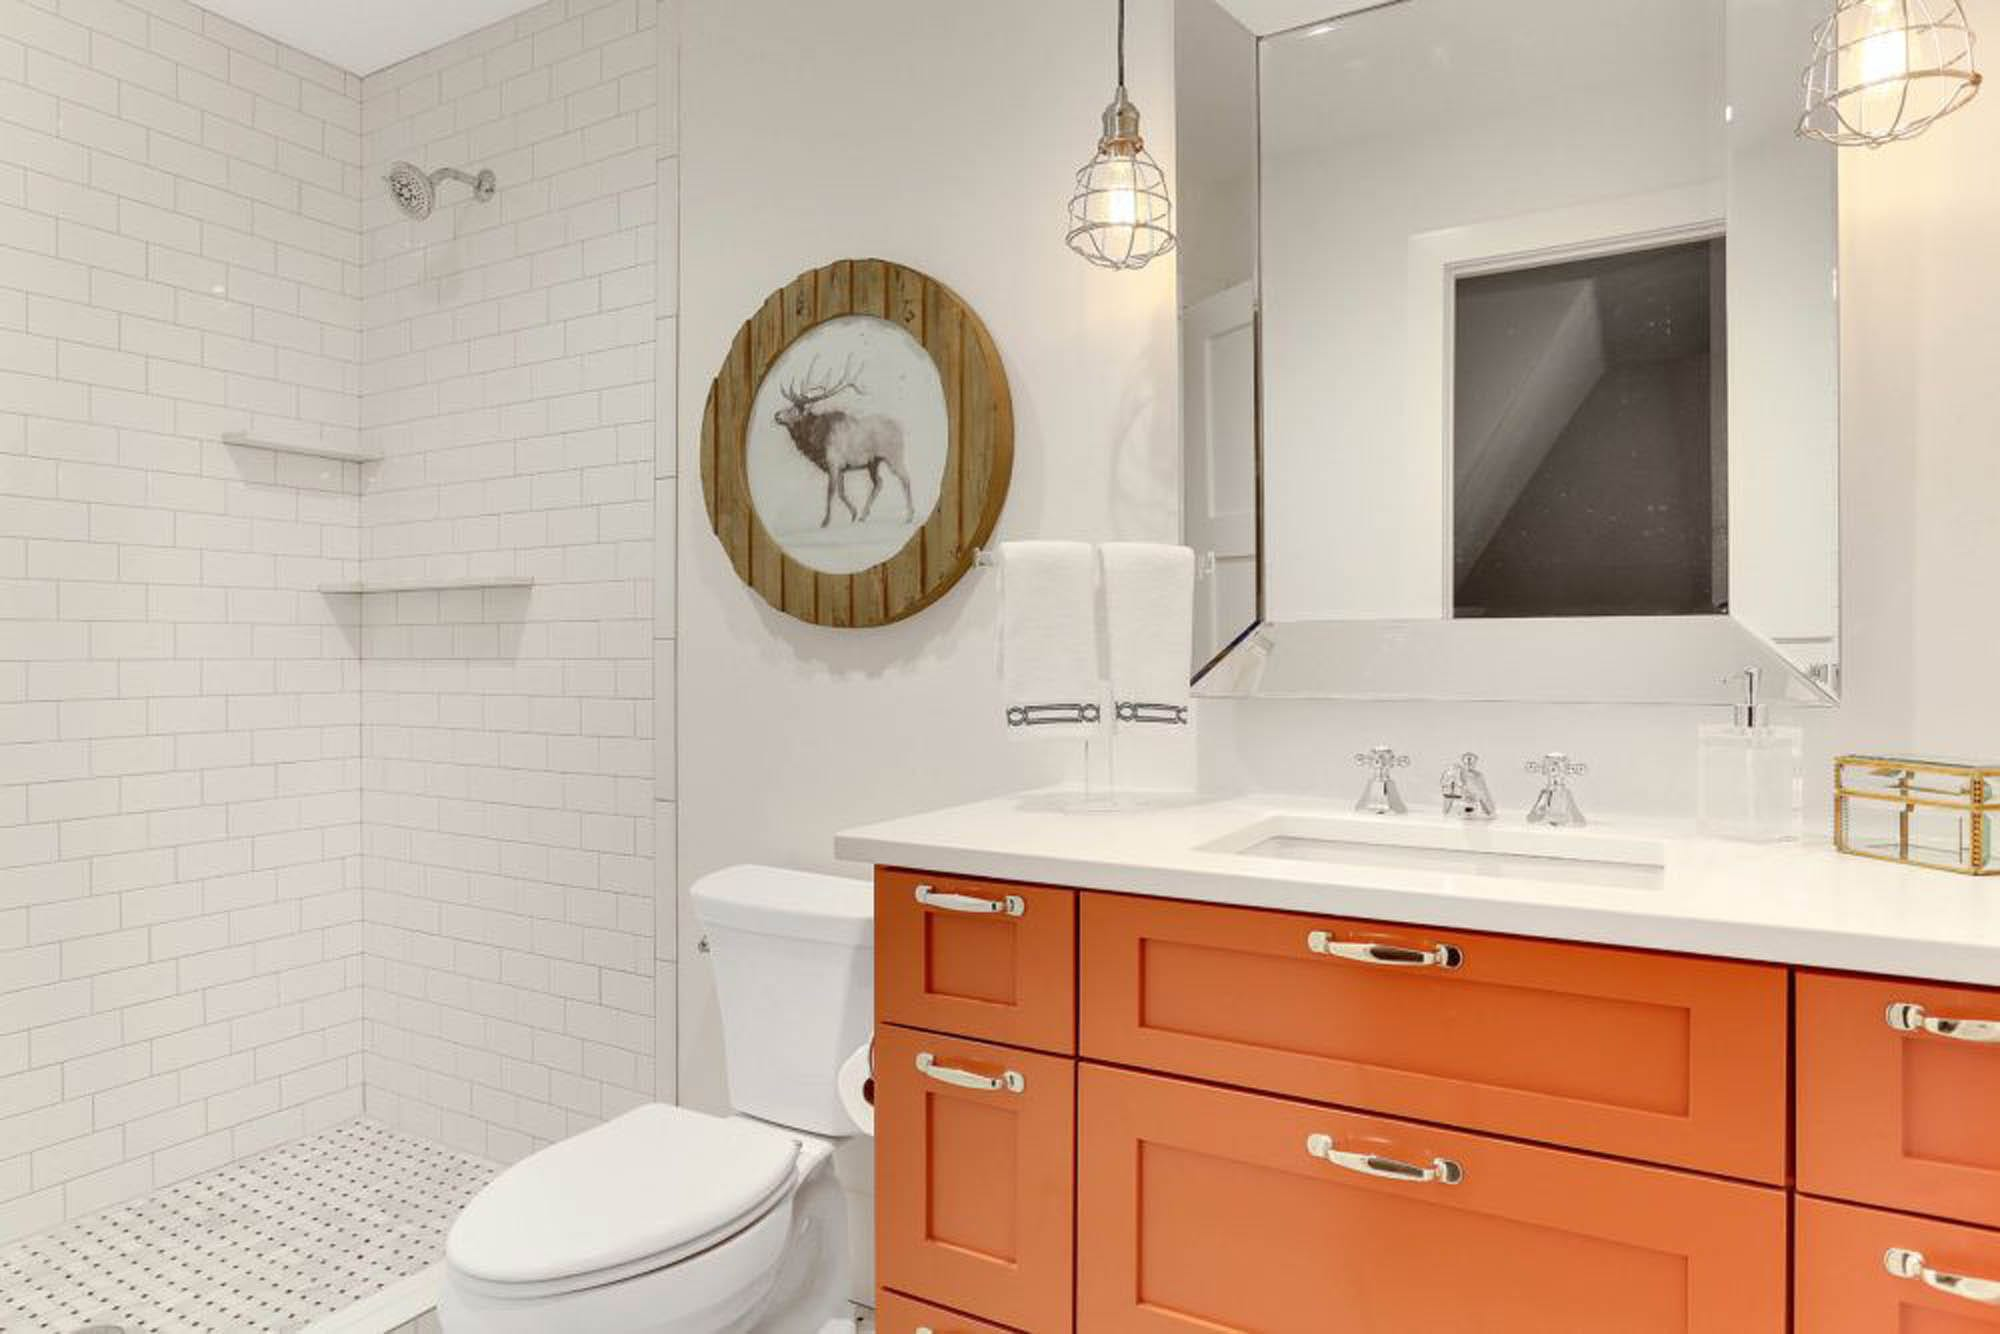 A pop of orange in a white tiled bathroom